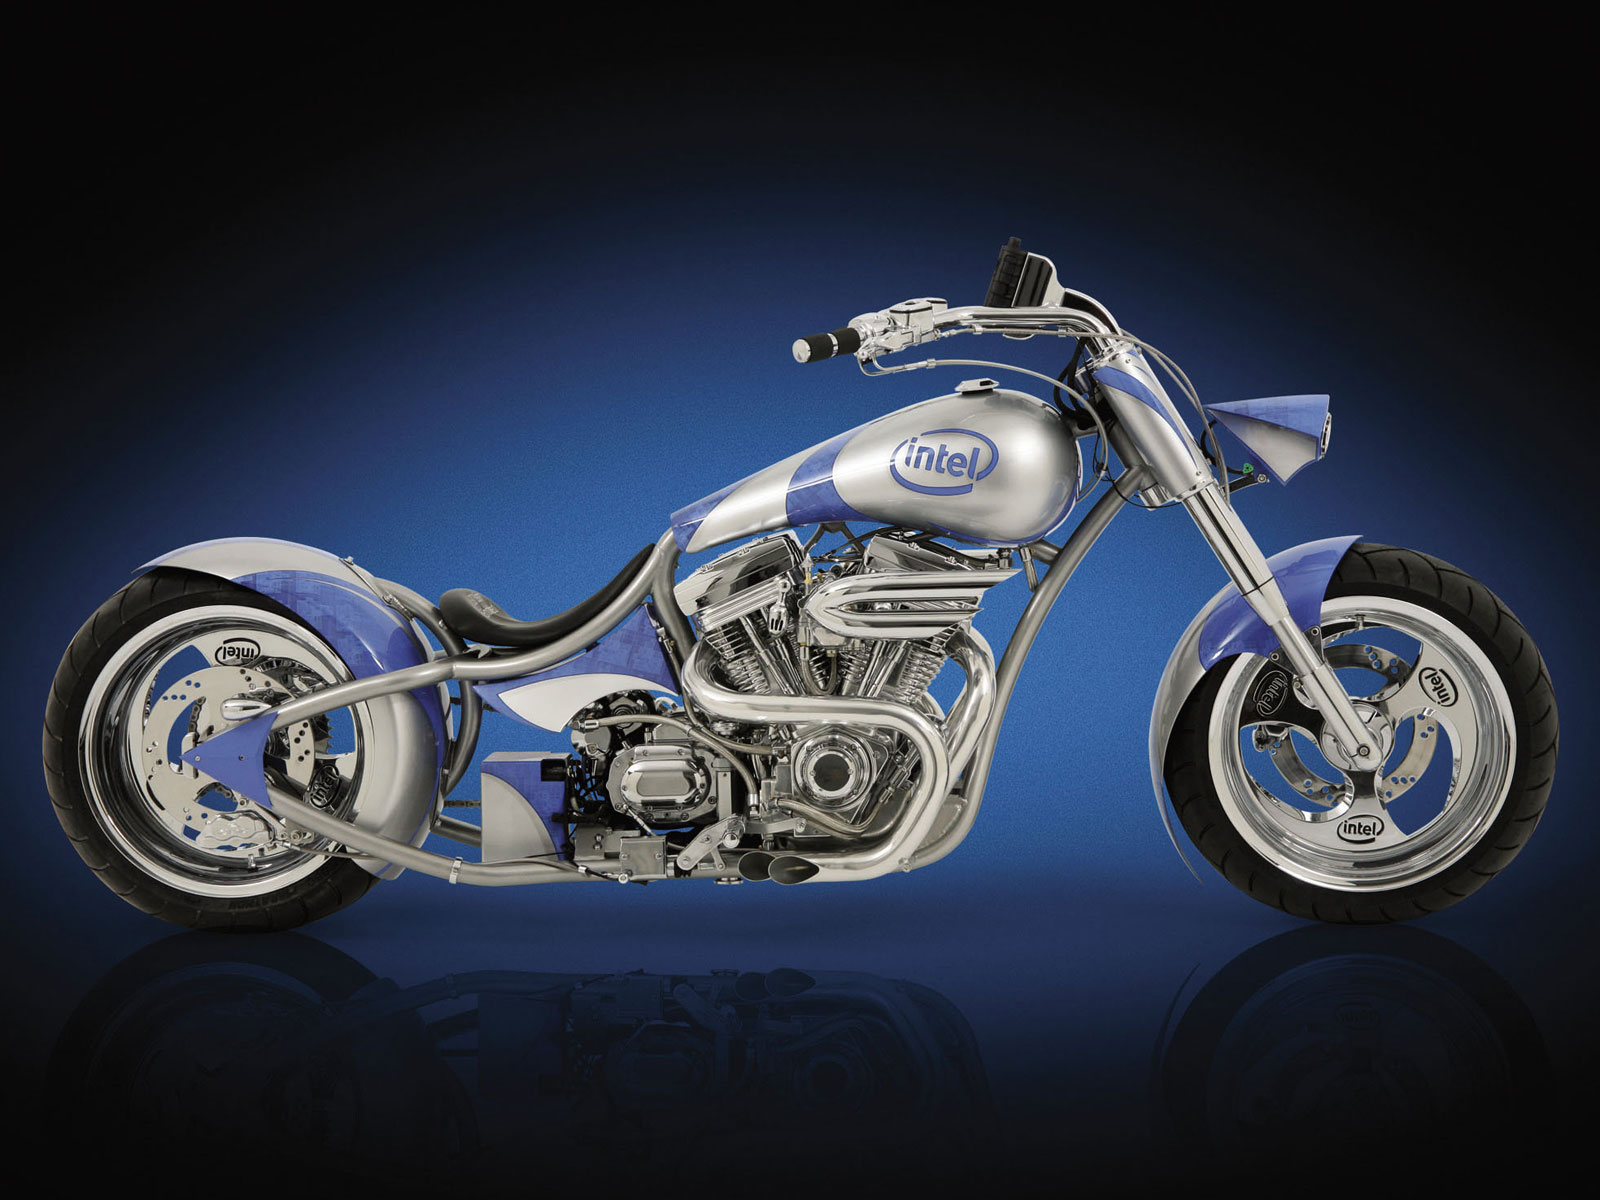 wallpaper-best-size: Intel Blue Sider Chopper Motorcycle